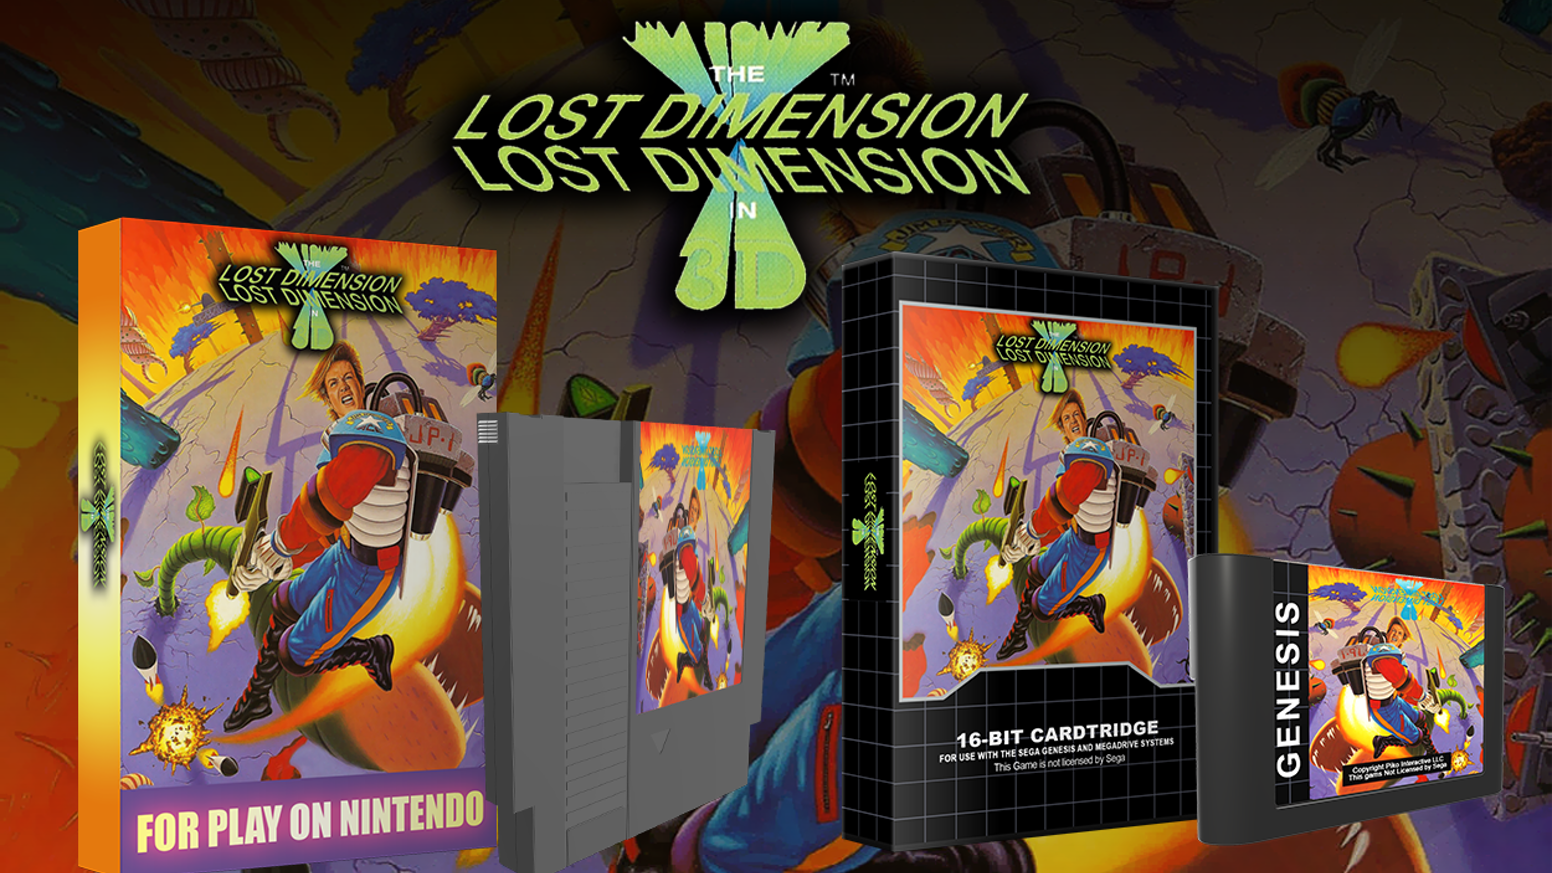 A New NES, Sega Genesis/Megadrive game! With re-releases for SNES, Turbografx  CD and CD32!